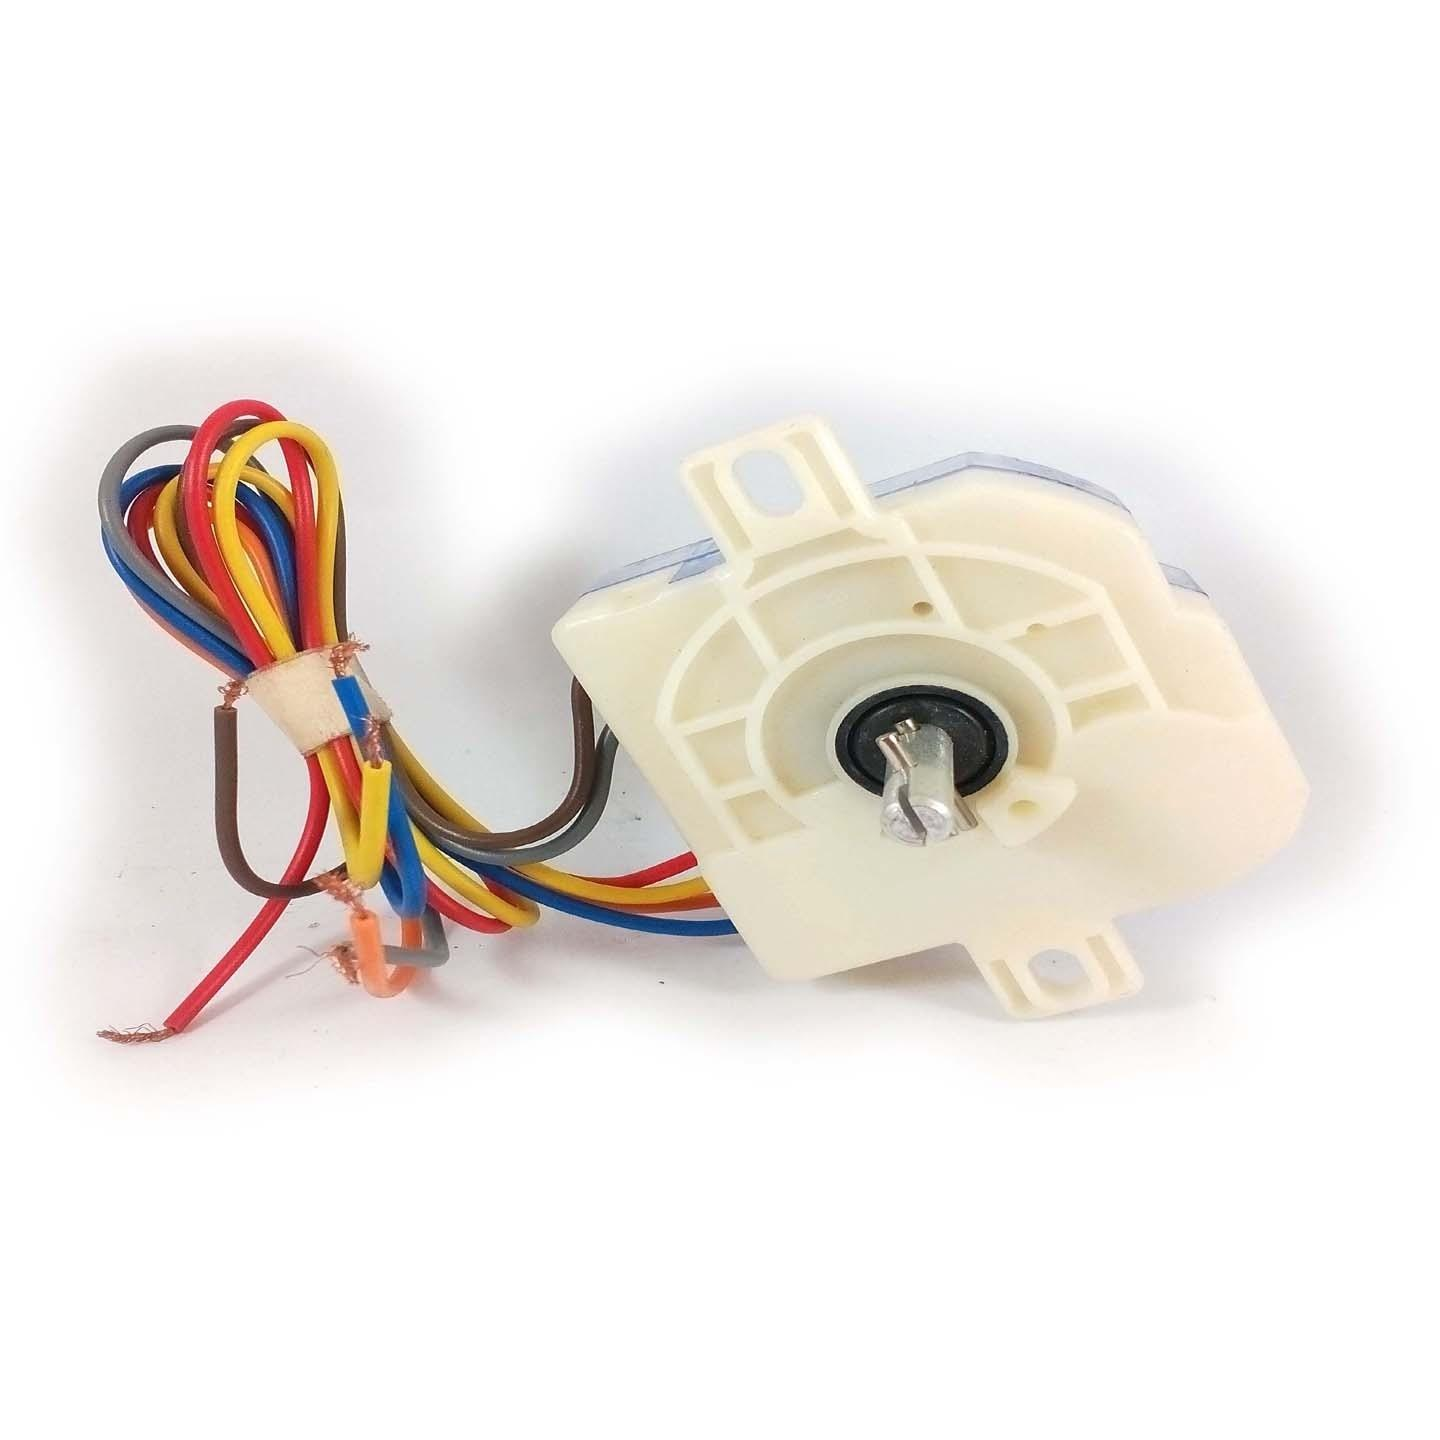 Washer Dryer Accessories For Sale Parts Prices Ge Washing Machine Motor Wiring Harness Free Download Diagram Timer Control Non Slanting 6 Wires